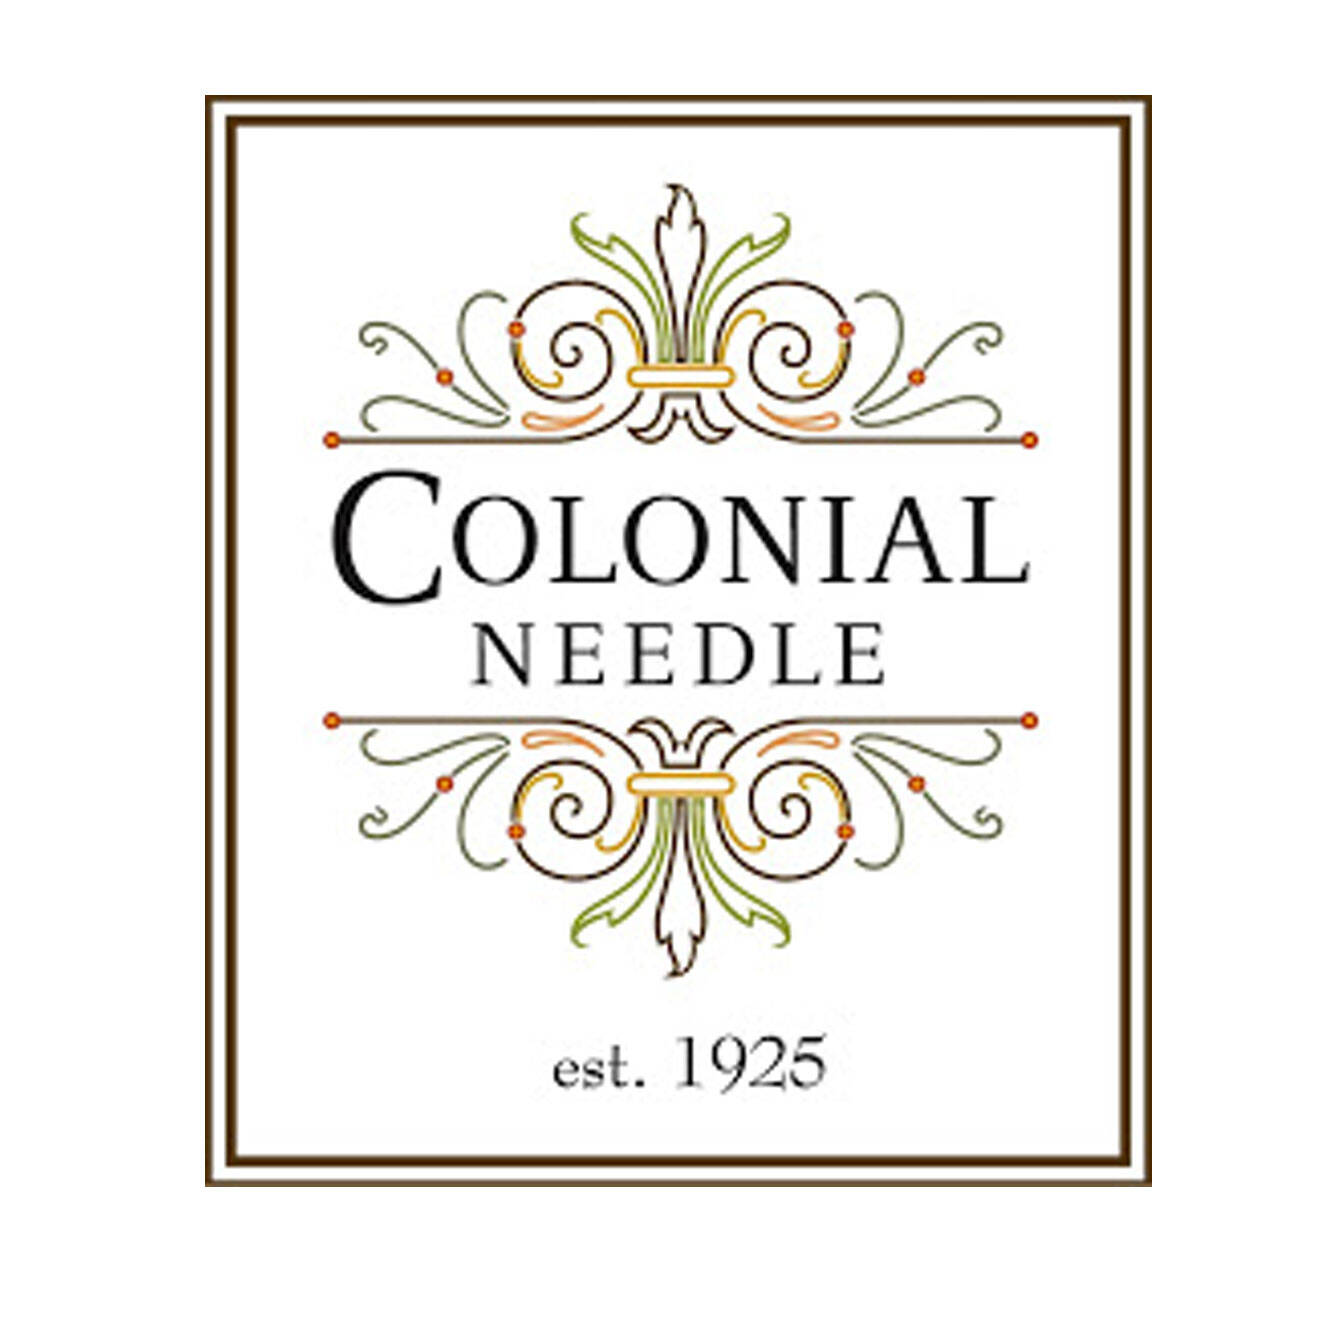 Colonial Needle Co